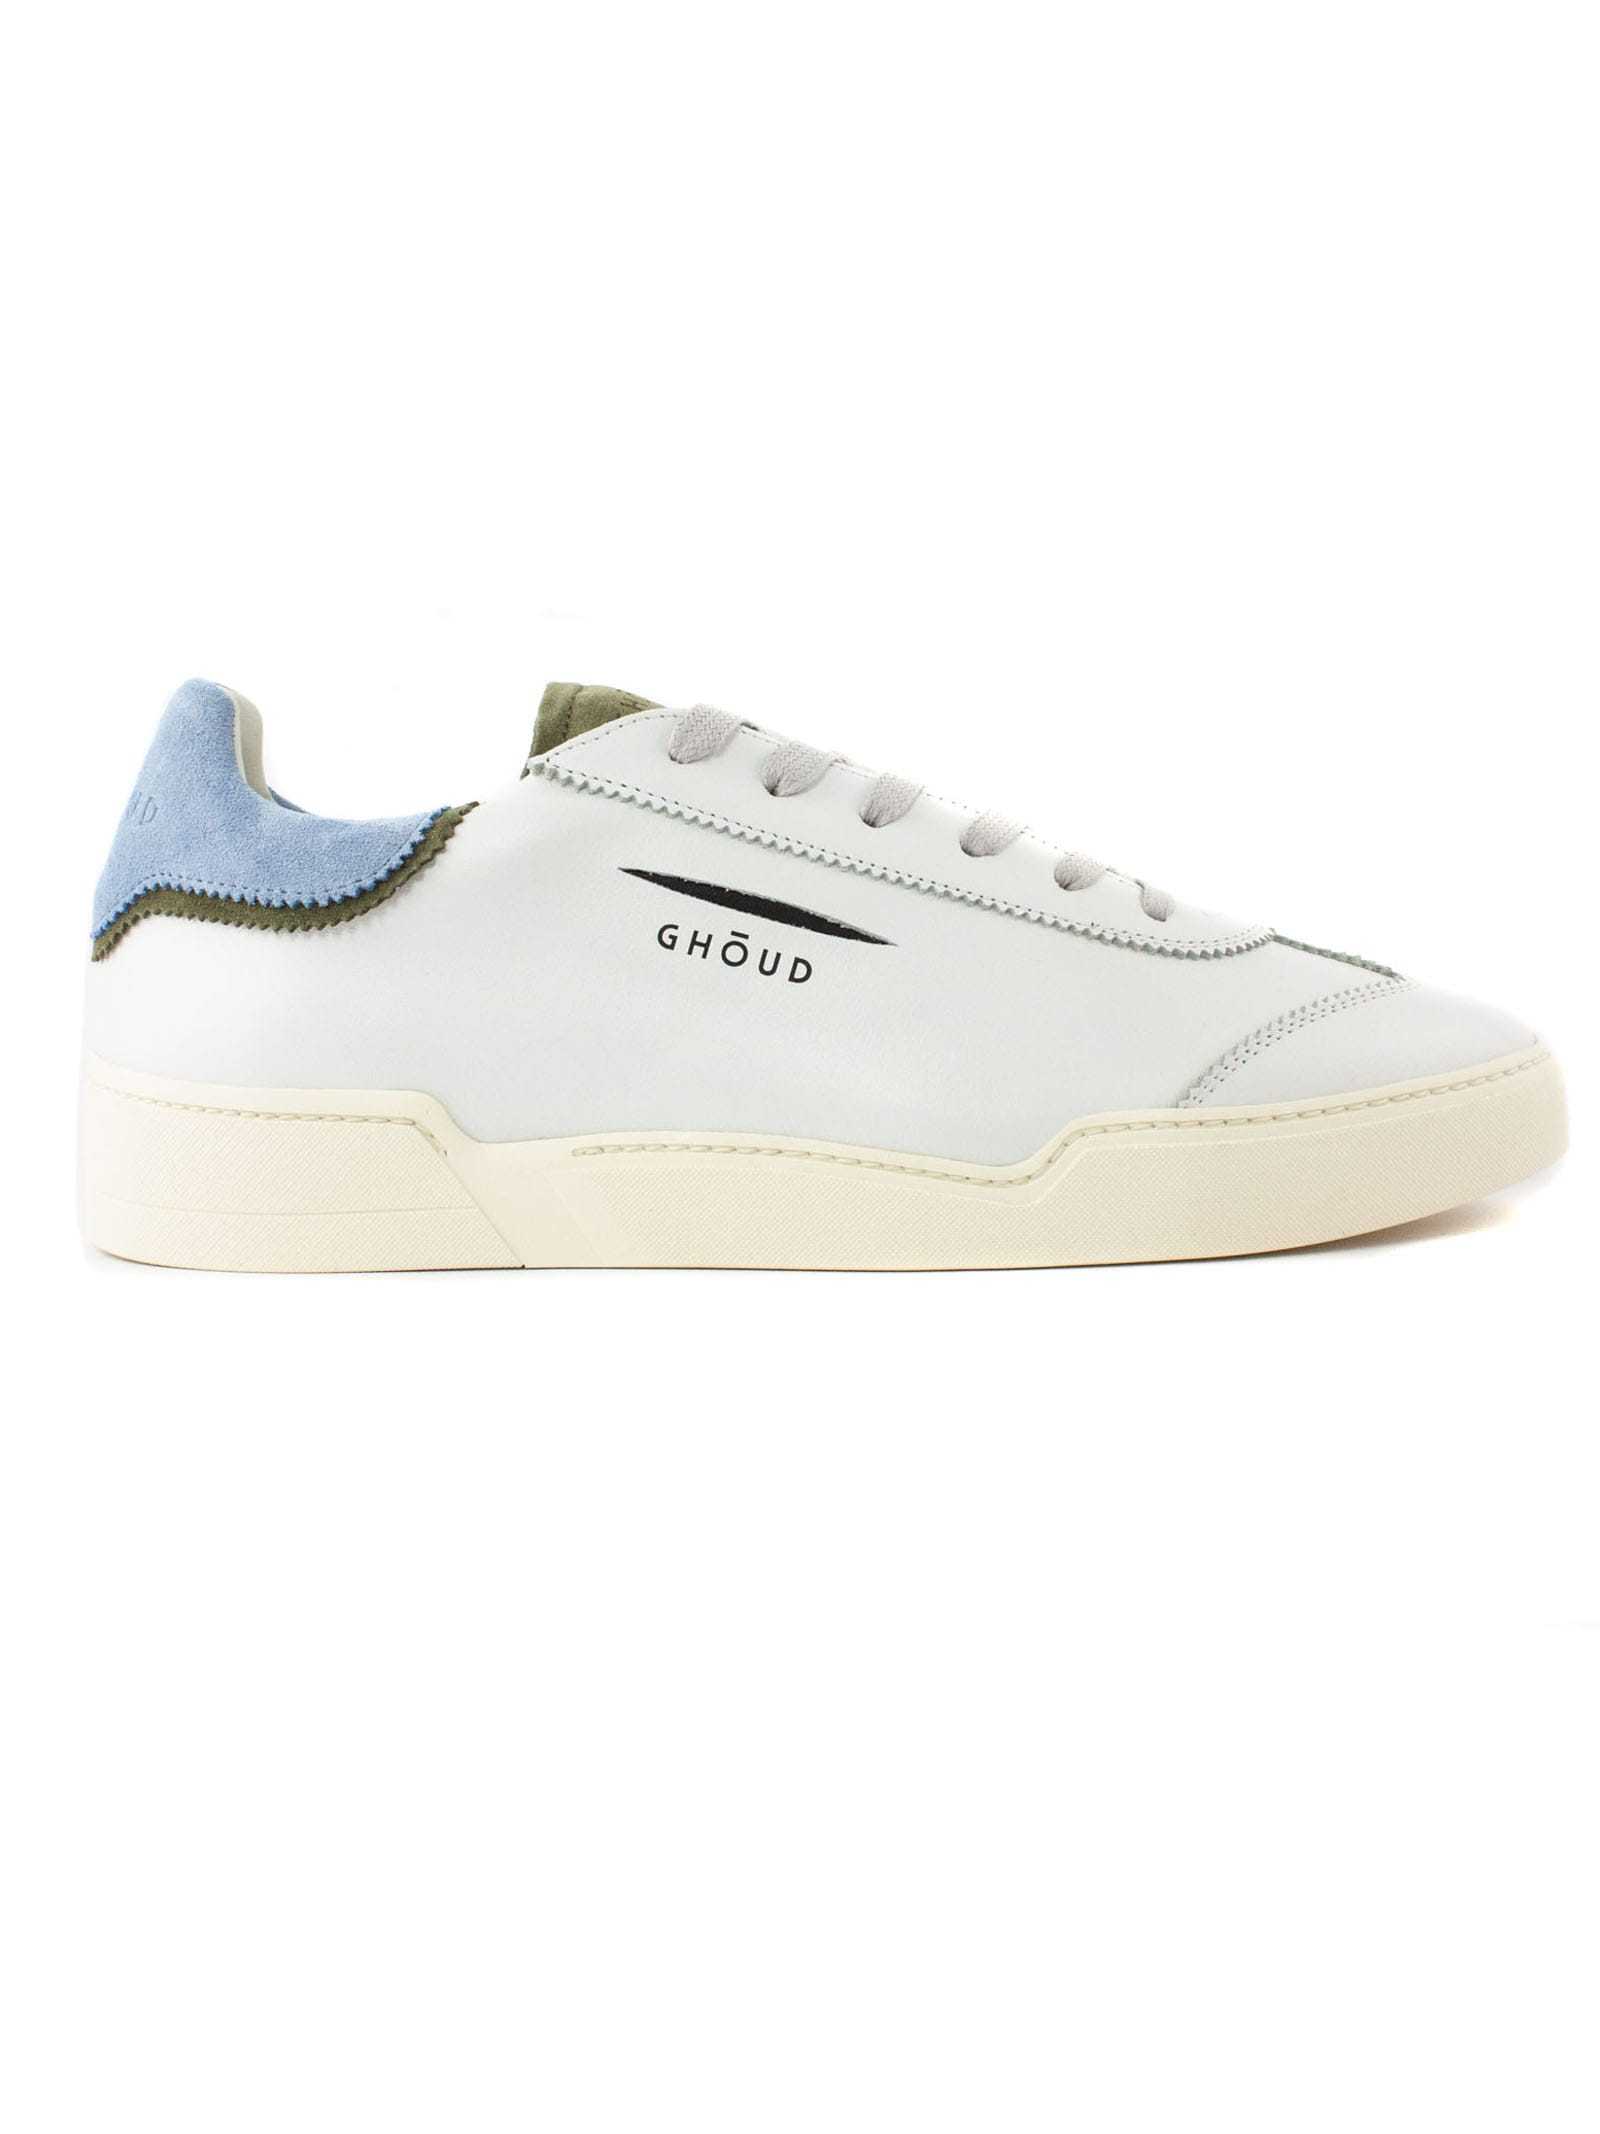 Ghoud Leathers WHITE LEATHER SNEAKERS